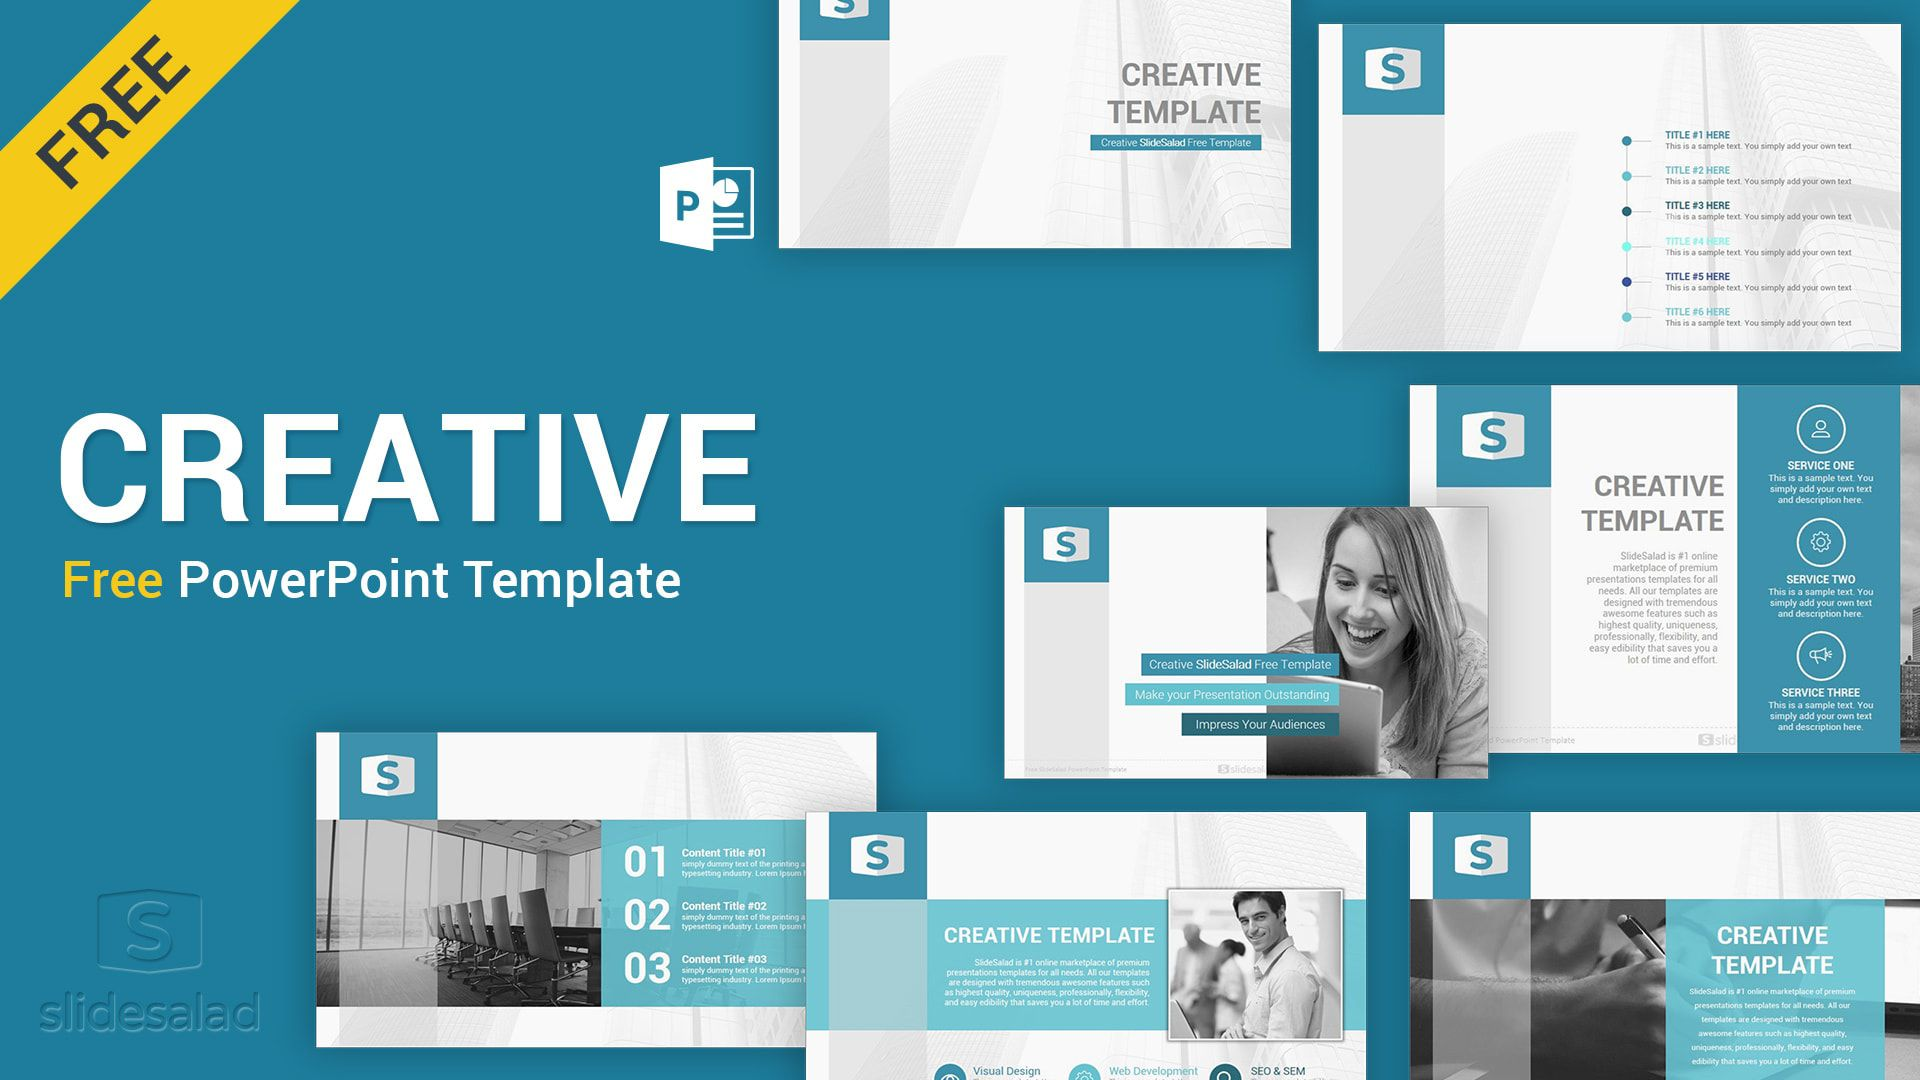 003 Awesome Download Free Powerpoint Template High Def  Templates Professional 2018 Ppt For Busines Presentation Education /Full